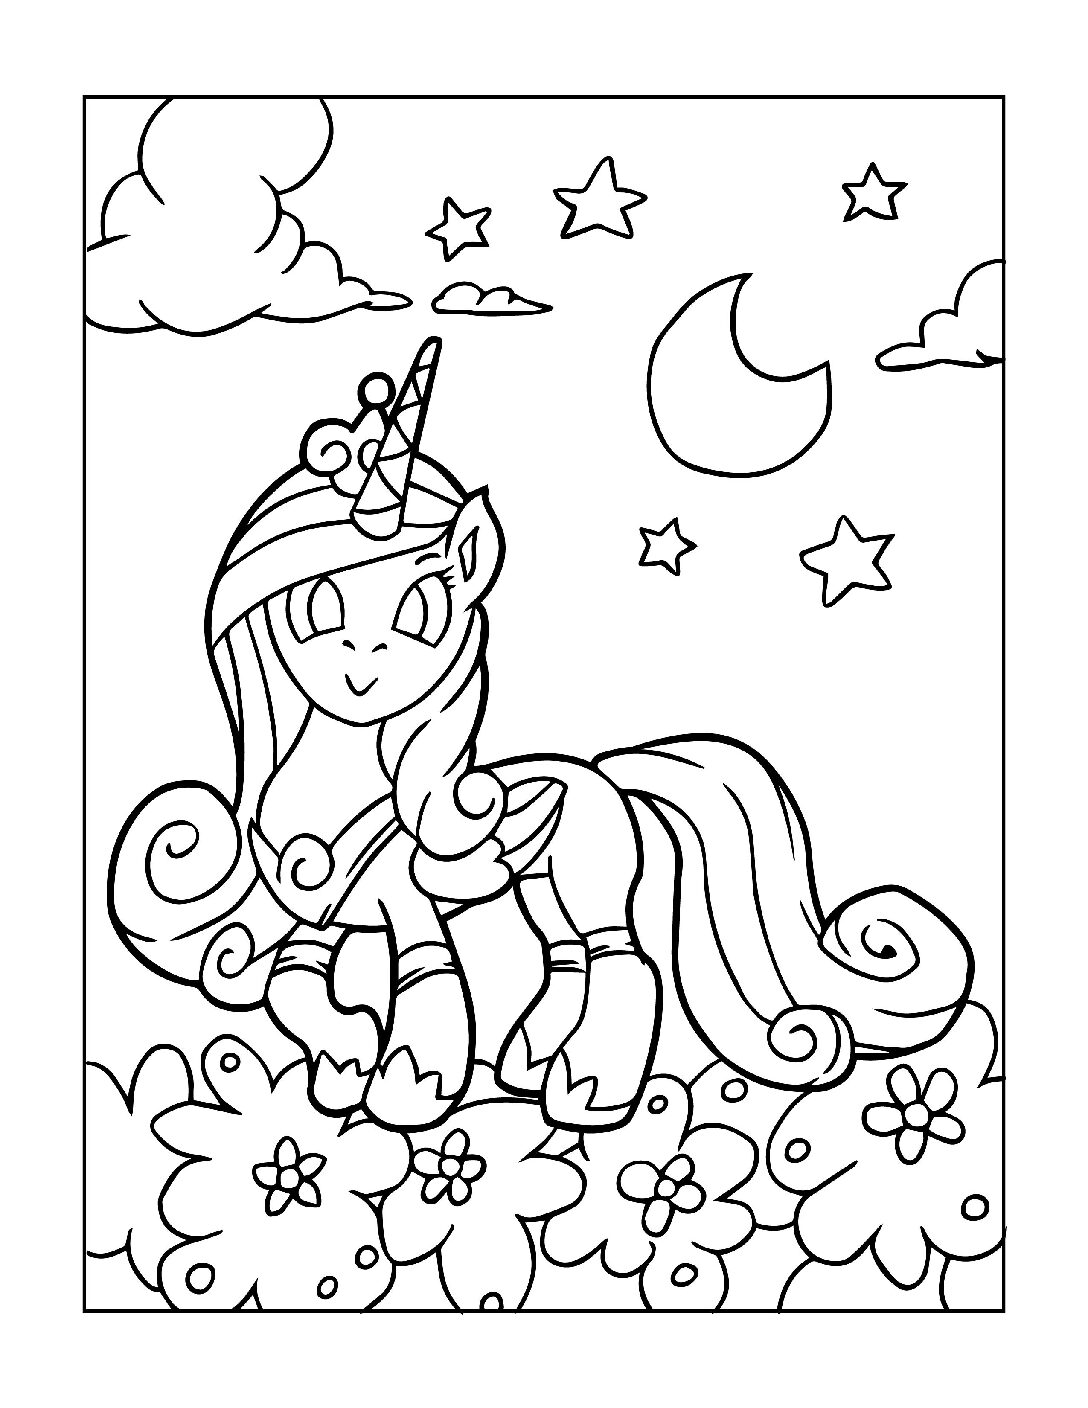 Coloring-Pages-Unicorns-1-pdf Free Printable Unicorn Colouring Pages